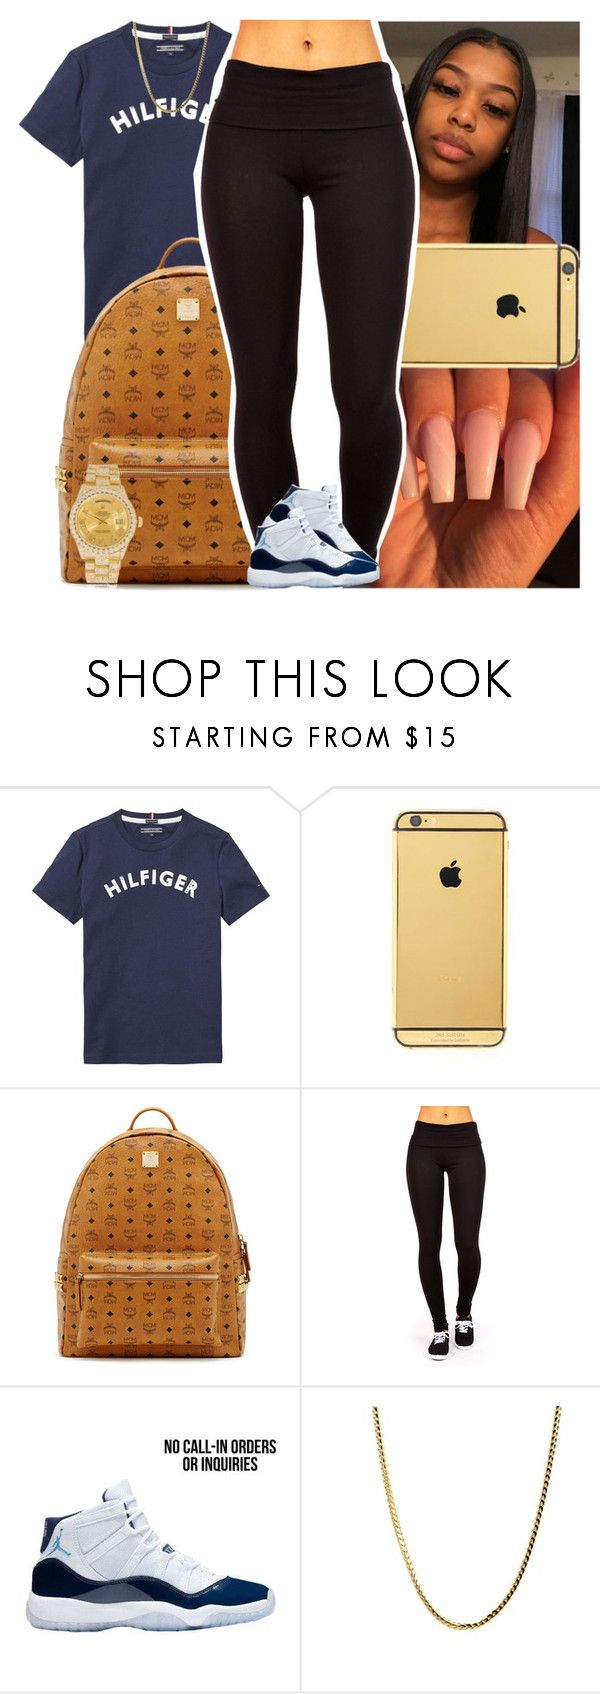 """Untitled #1433"" by msixo ❤ liked on Polyvore featuring Tommy Hilfiger, Goldgenie, MCM and Rolex"